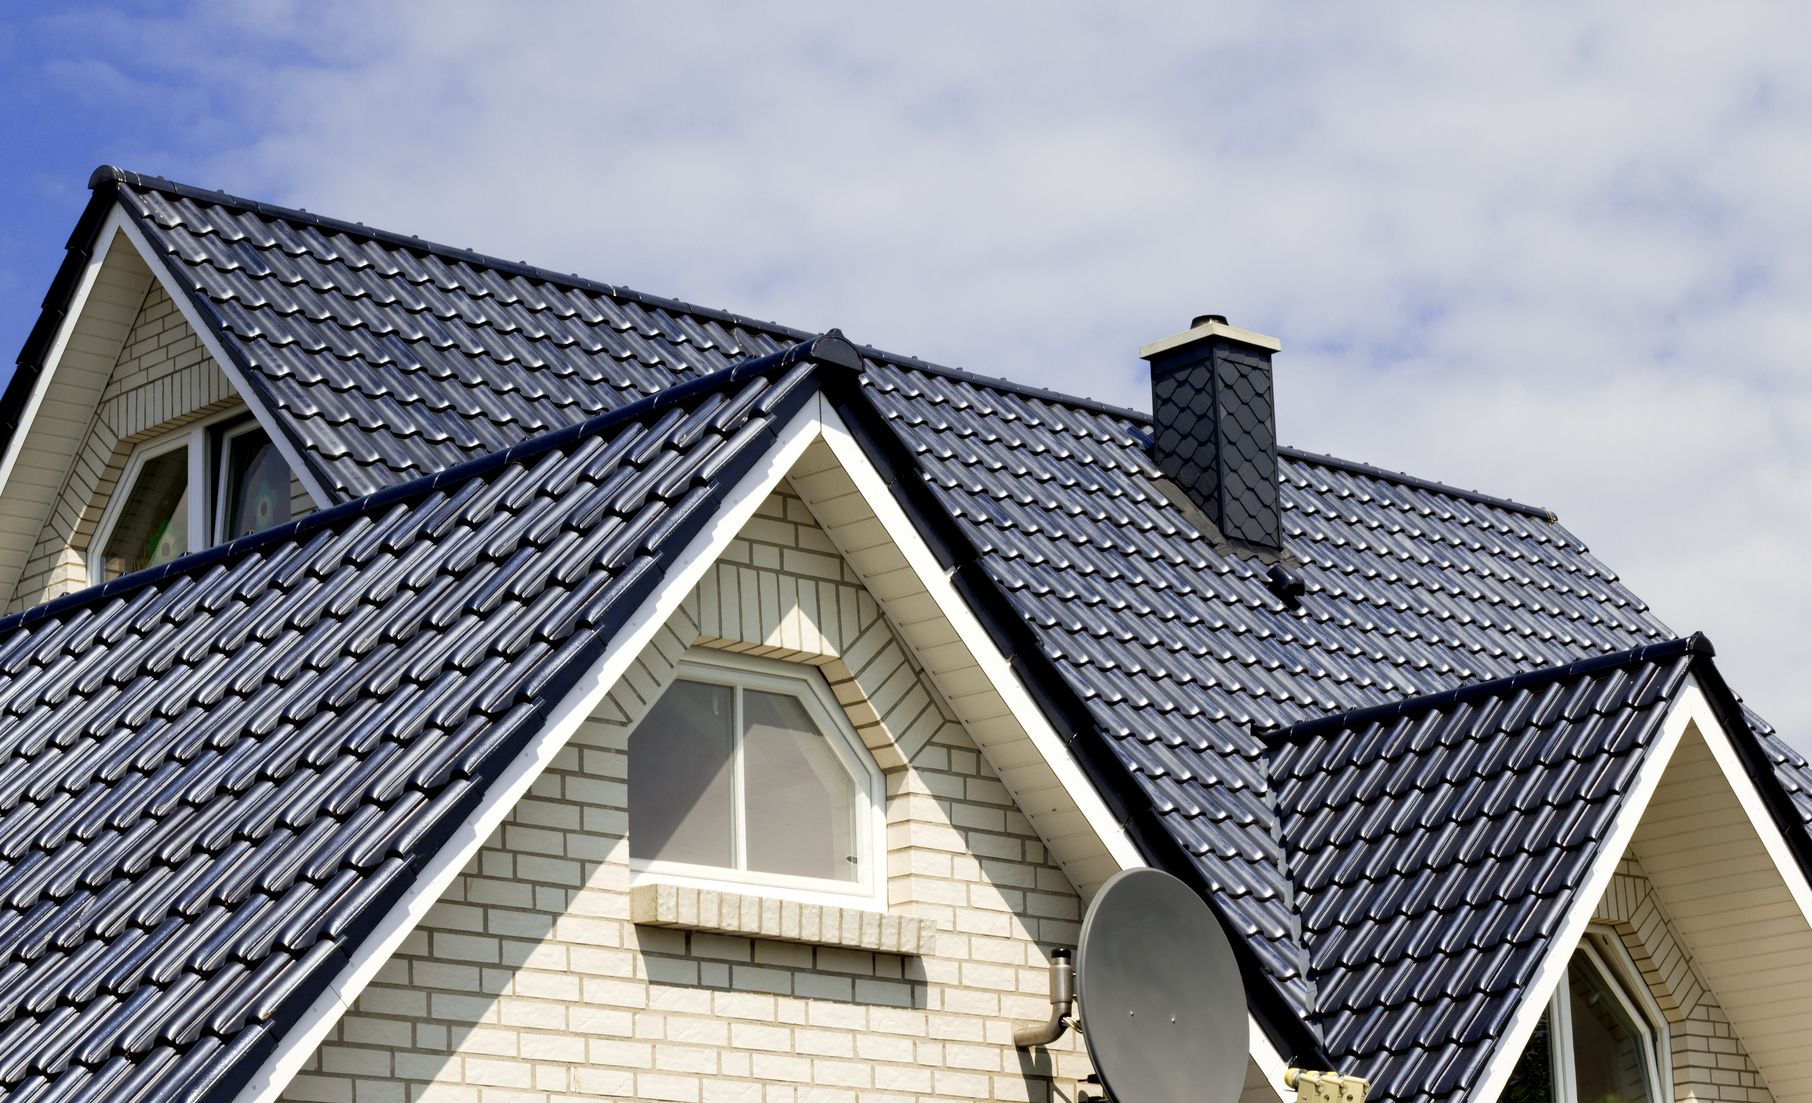 Hire Professional Qualified Knowledgeable And Helpful People To Get Your Roof Repaired Nwroofs Provides The Residential Roofing Roofing Roofing Contractors